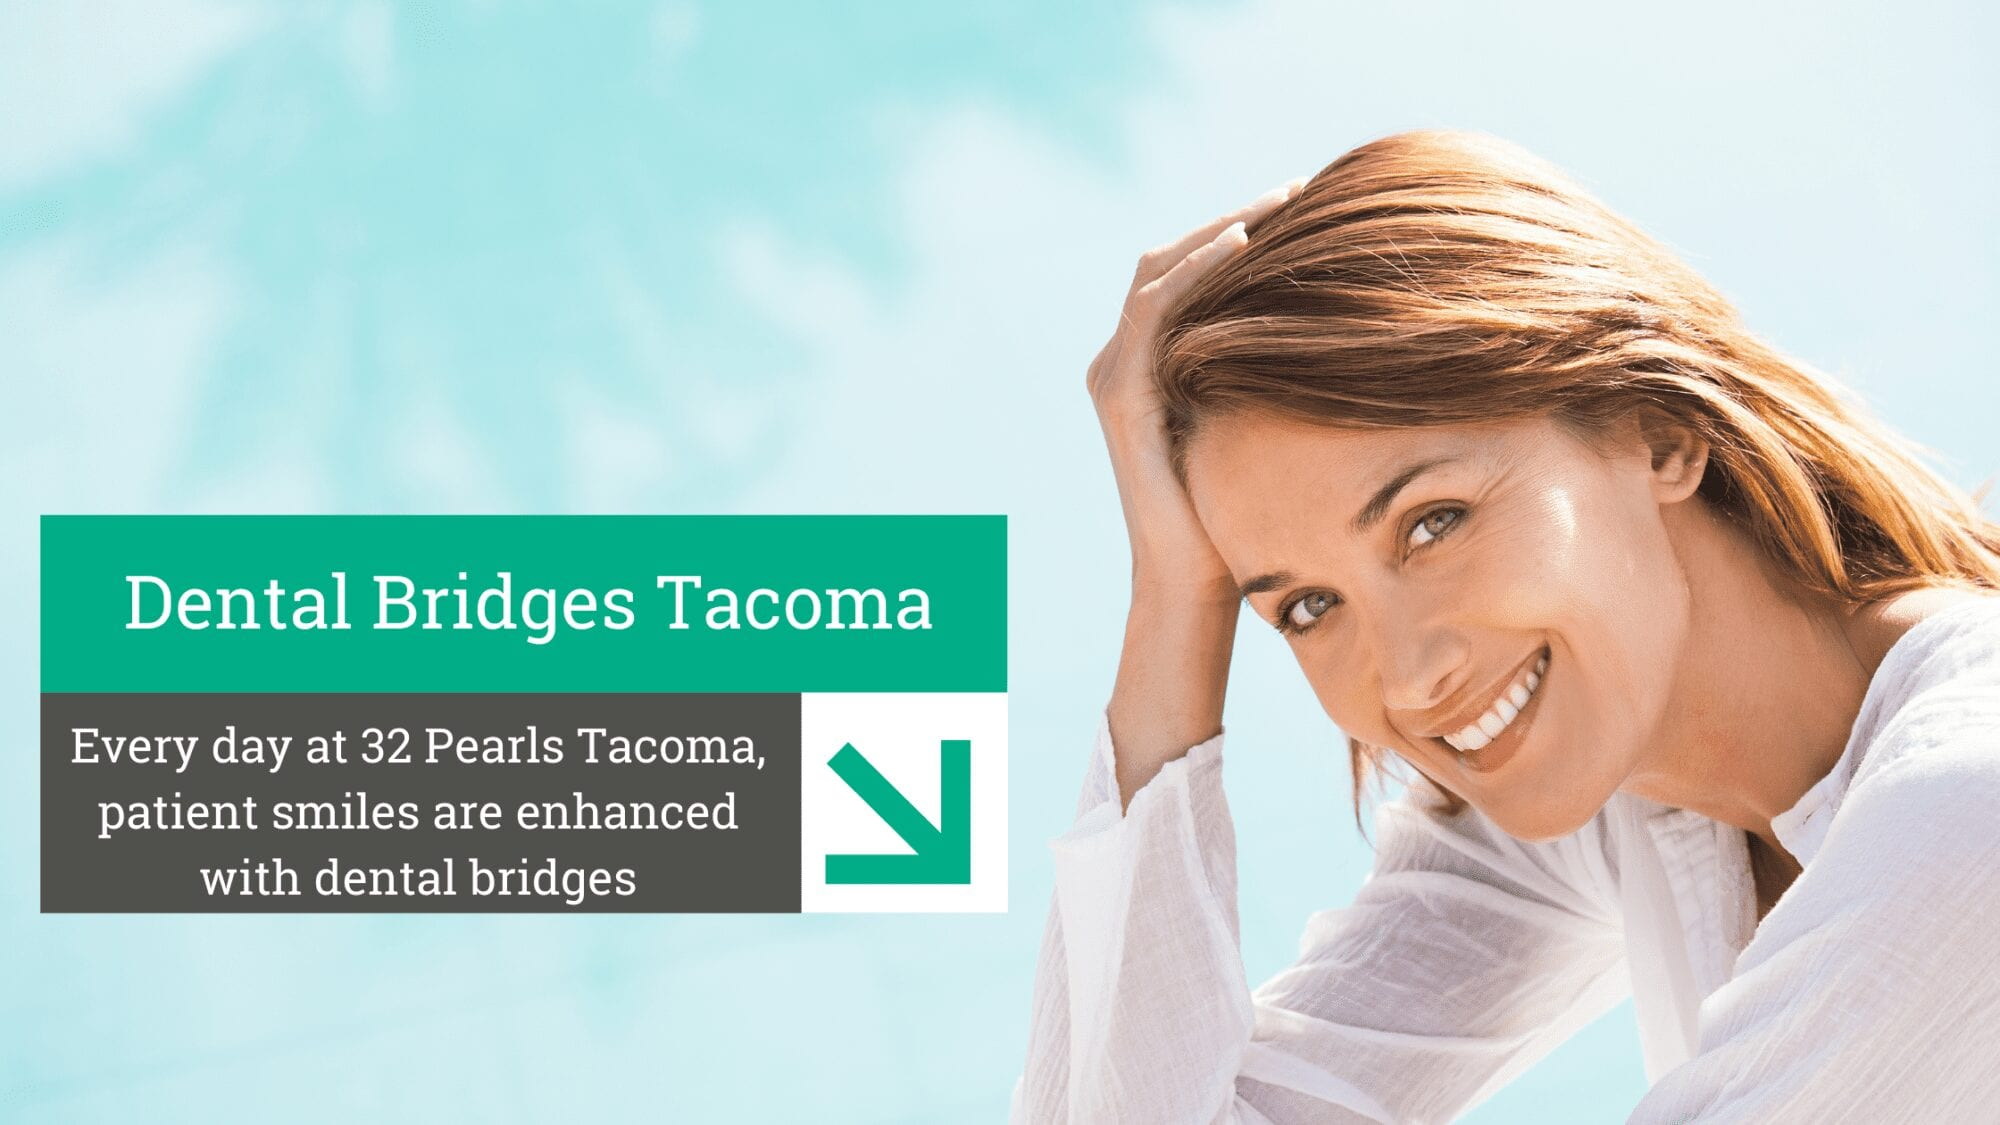 Dental Bridges Tacoma